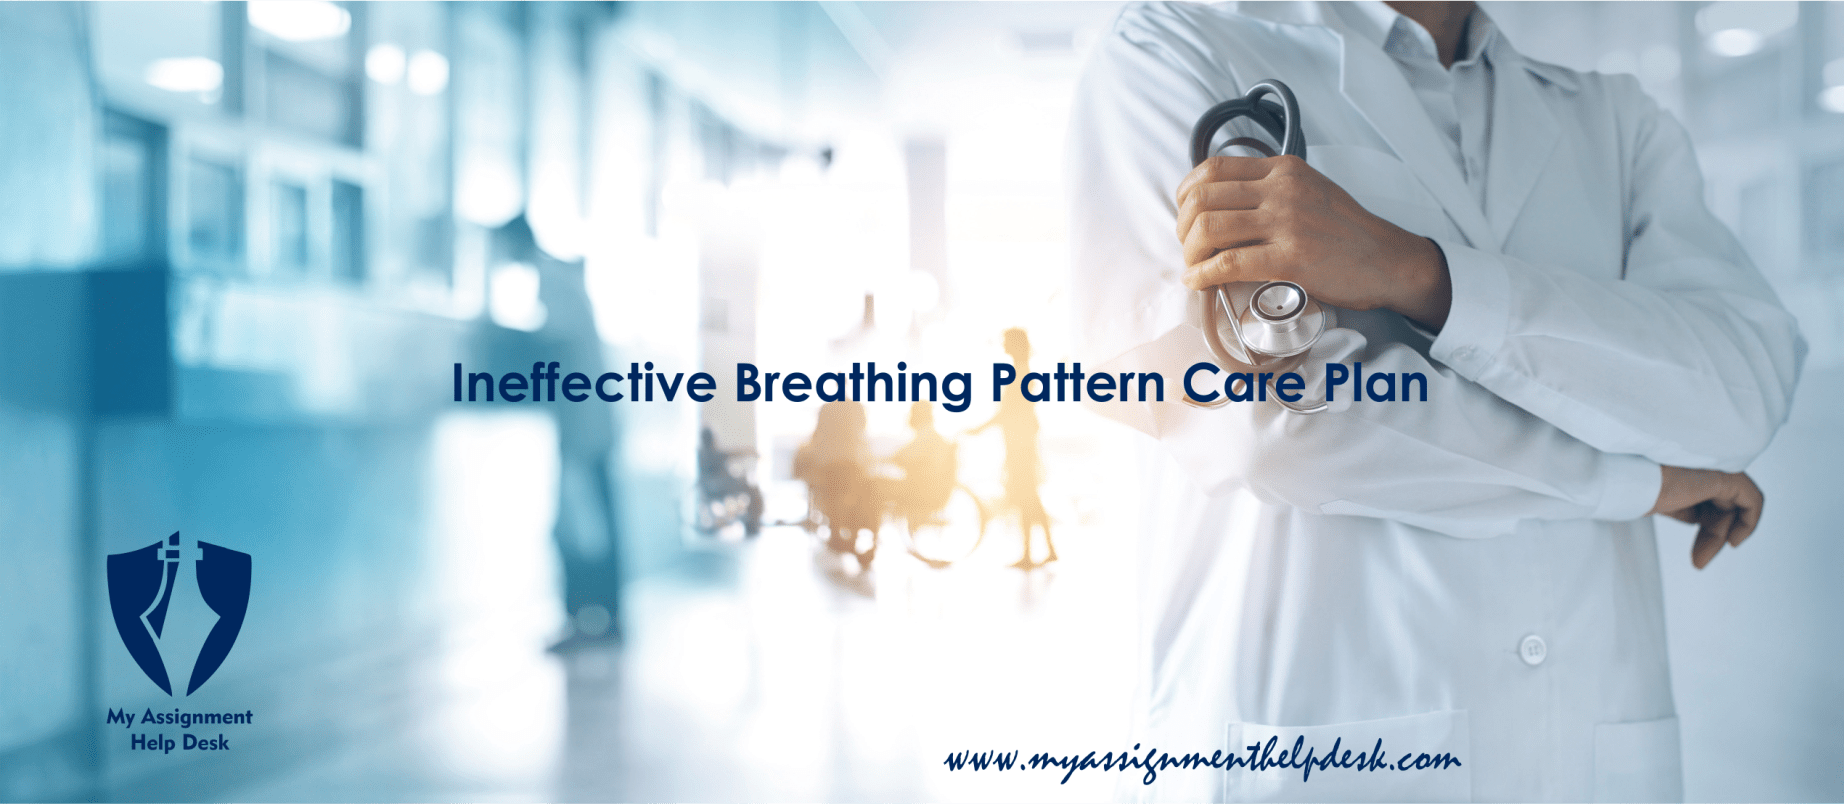 Ineffective Breathing Pattern Care Plan | Care plan for ...